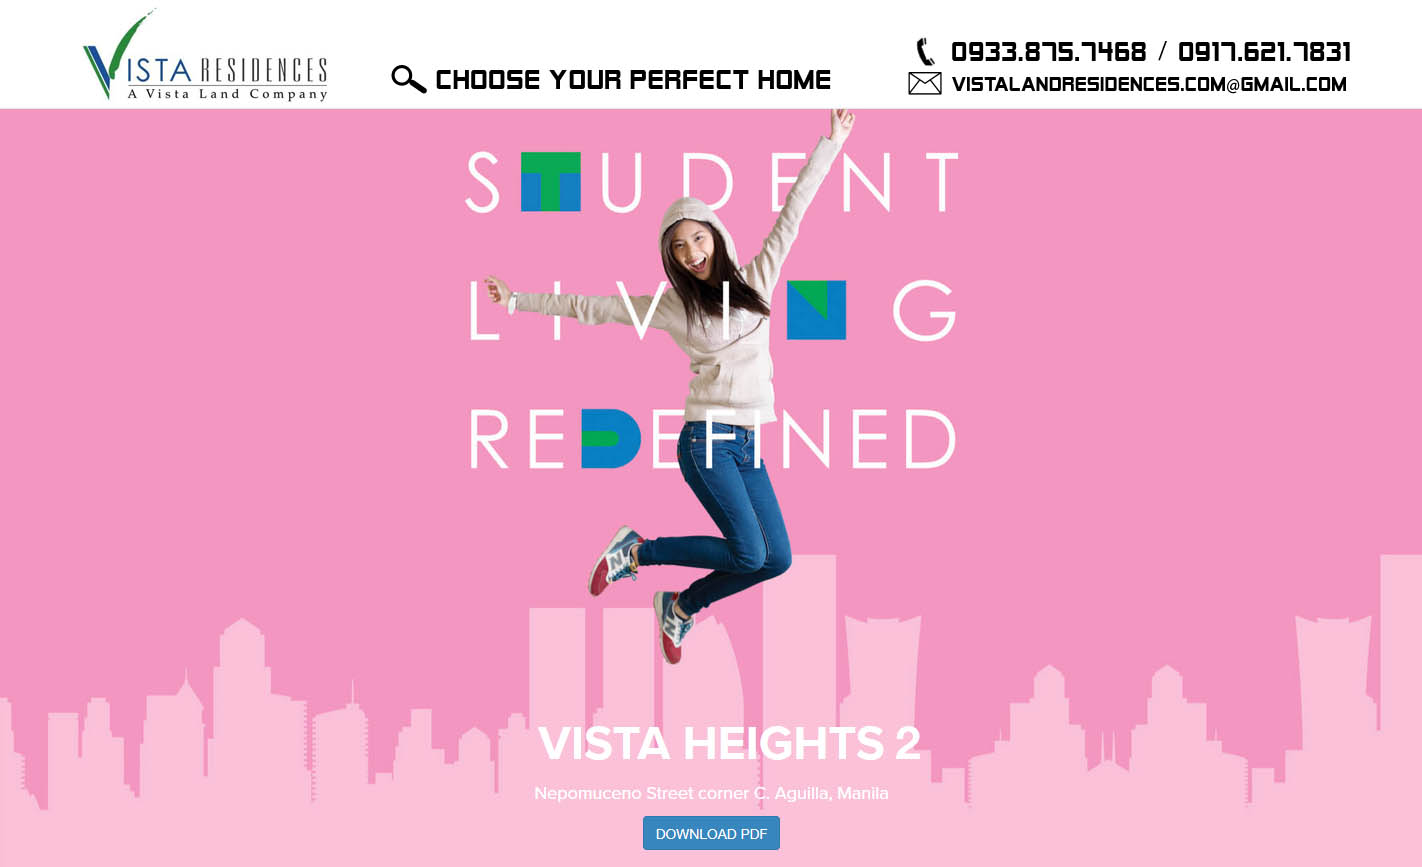 Vista Land Residences Vista Heights 2 Manila banner